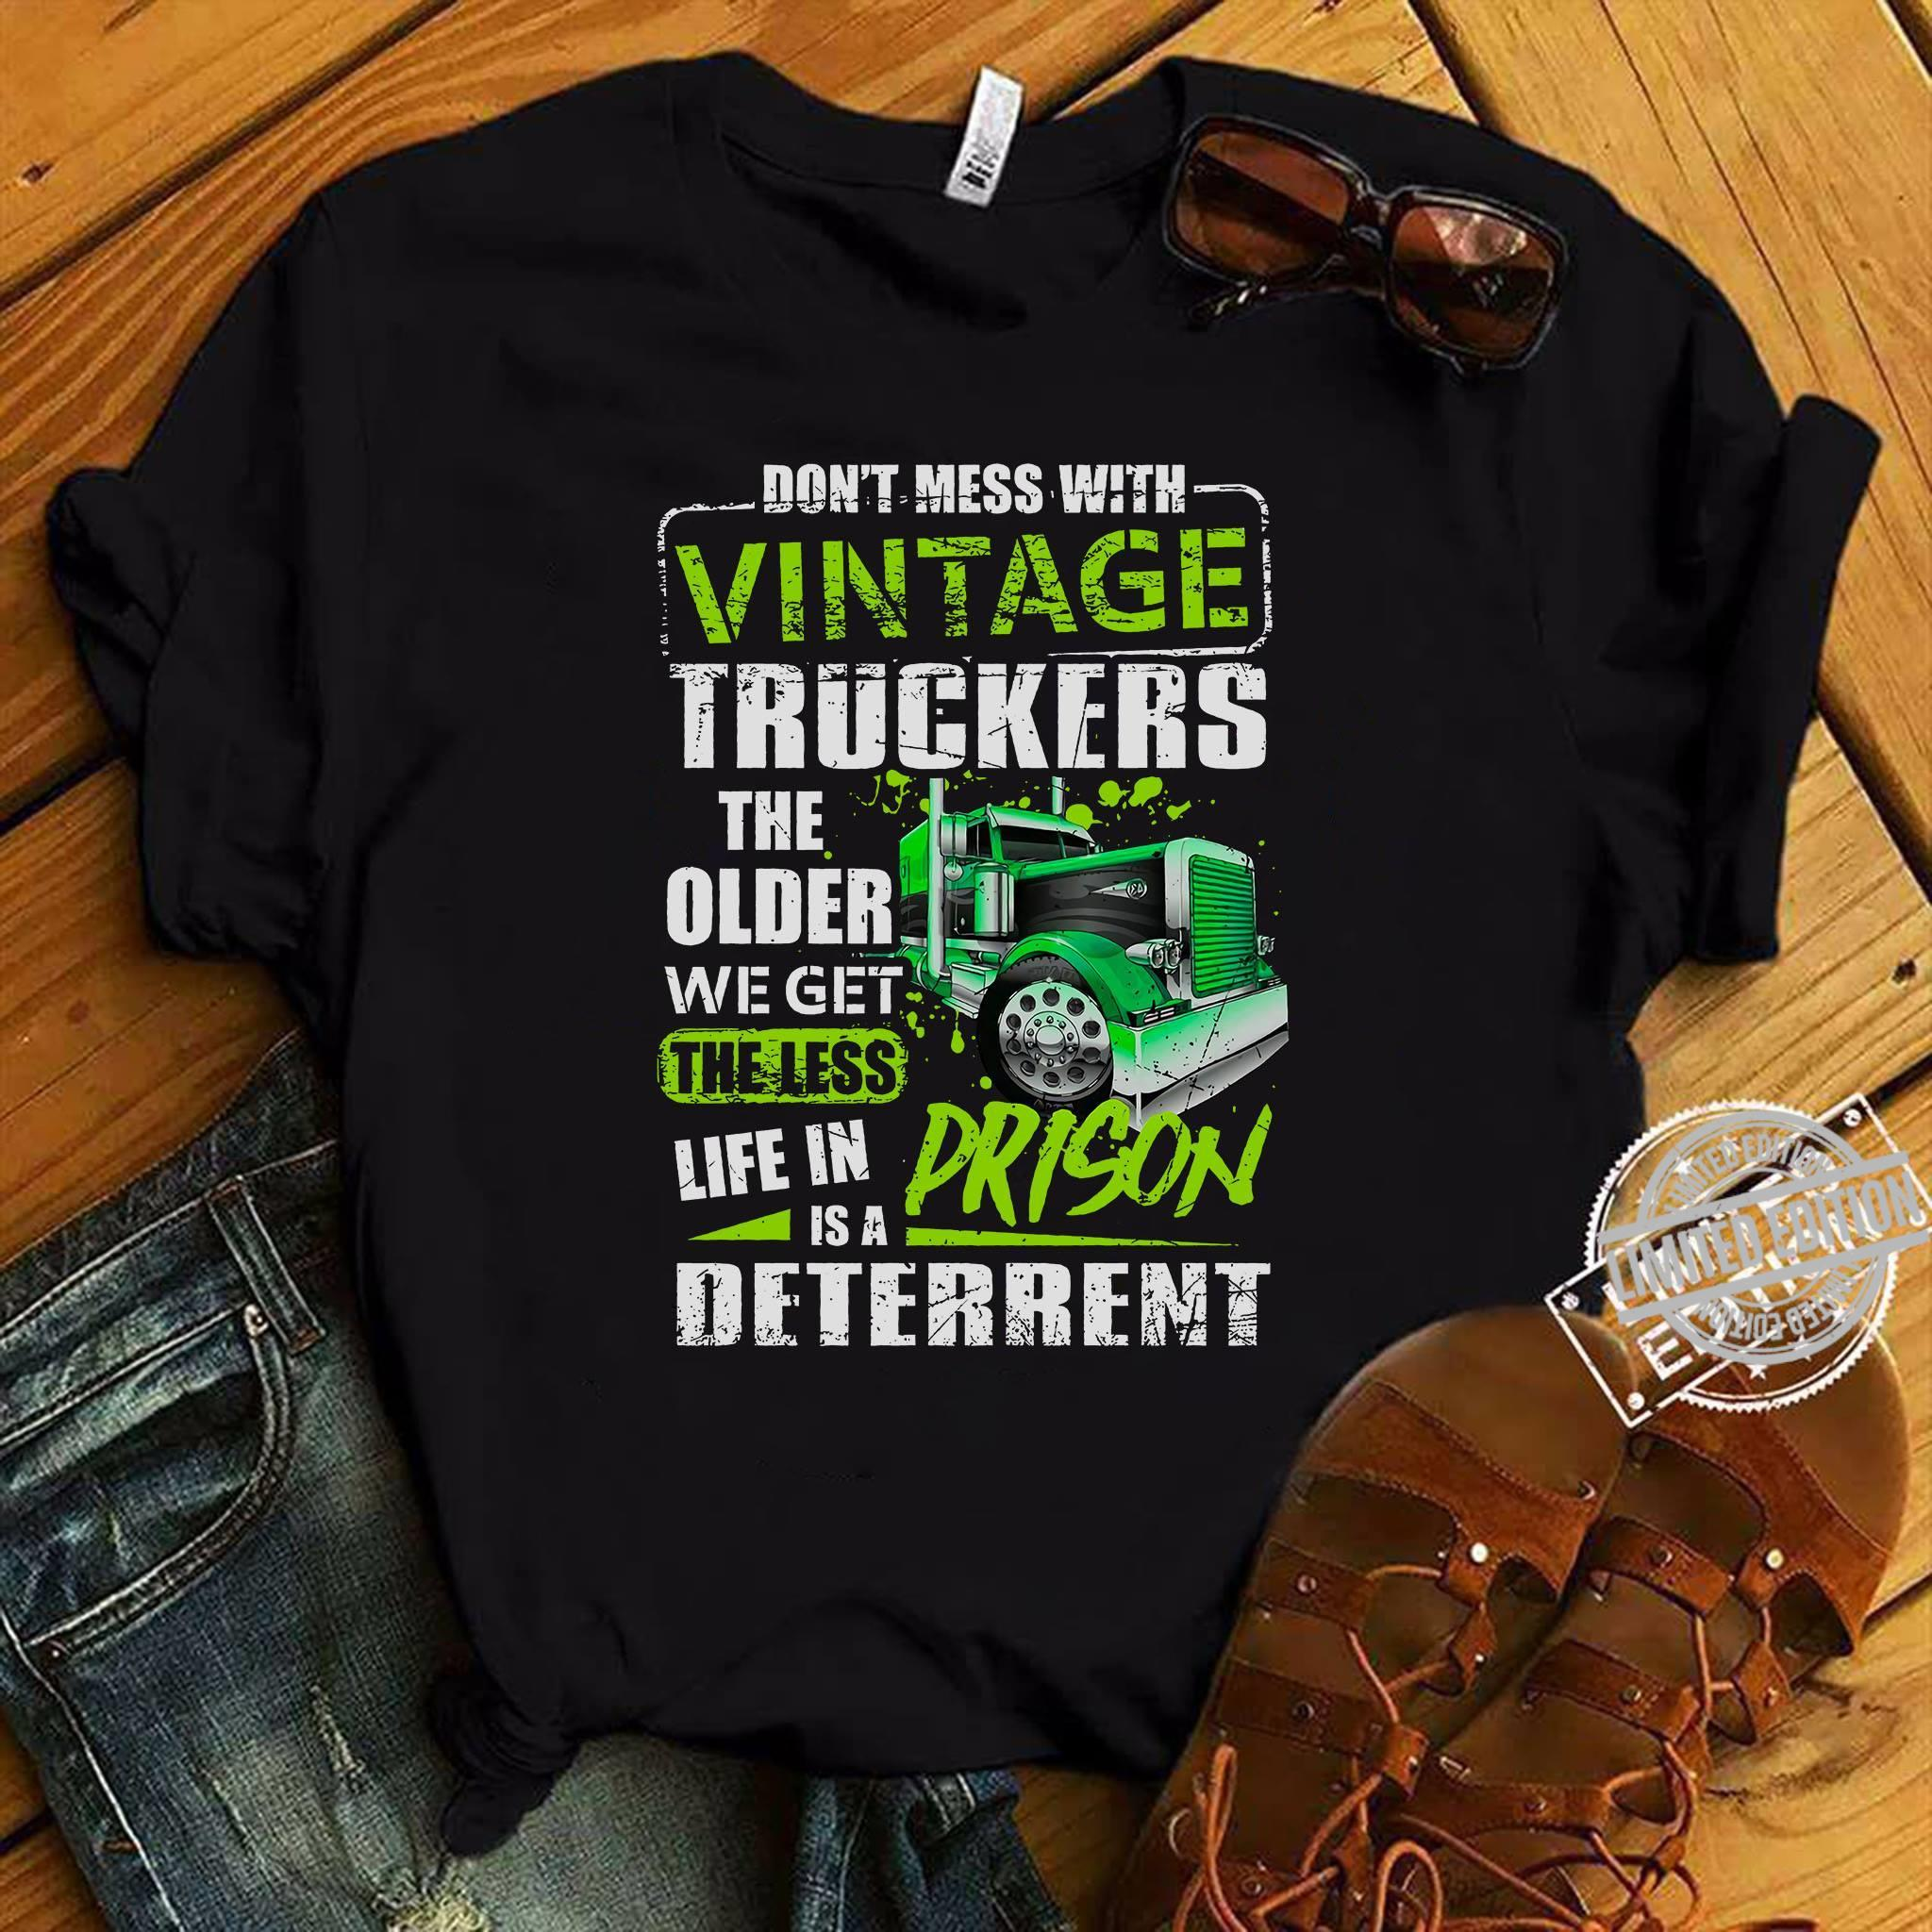 Don't Mess With Vintage Truckers The Older We Get The Less Life In Is A Person Deterrent Shirt